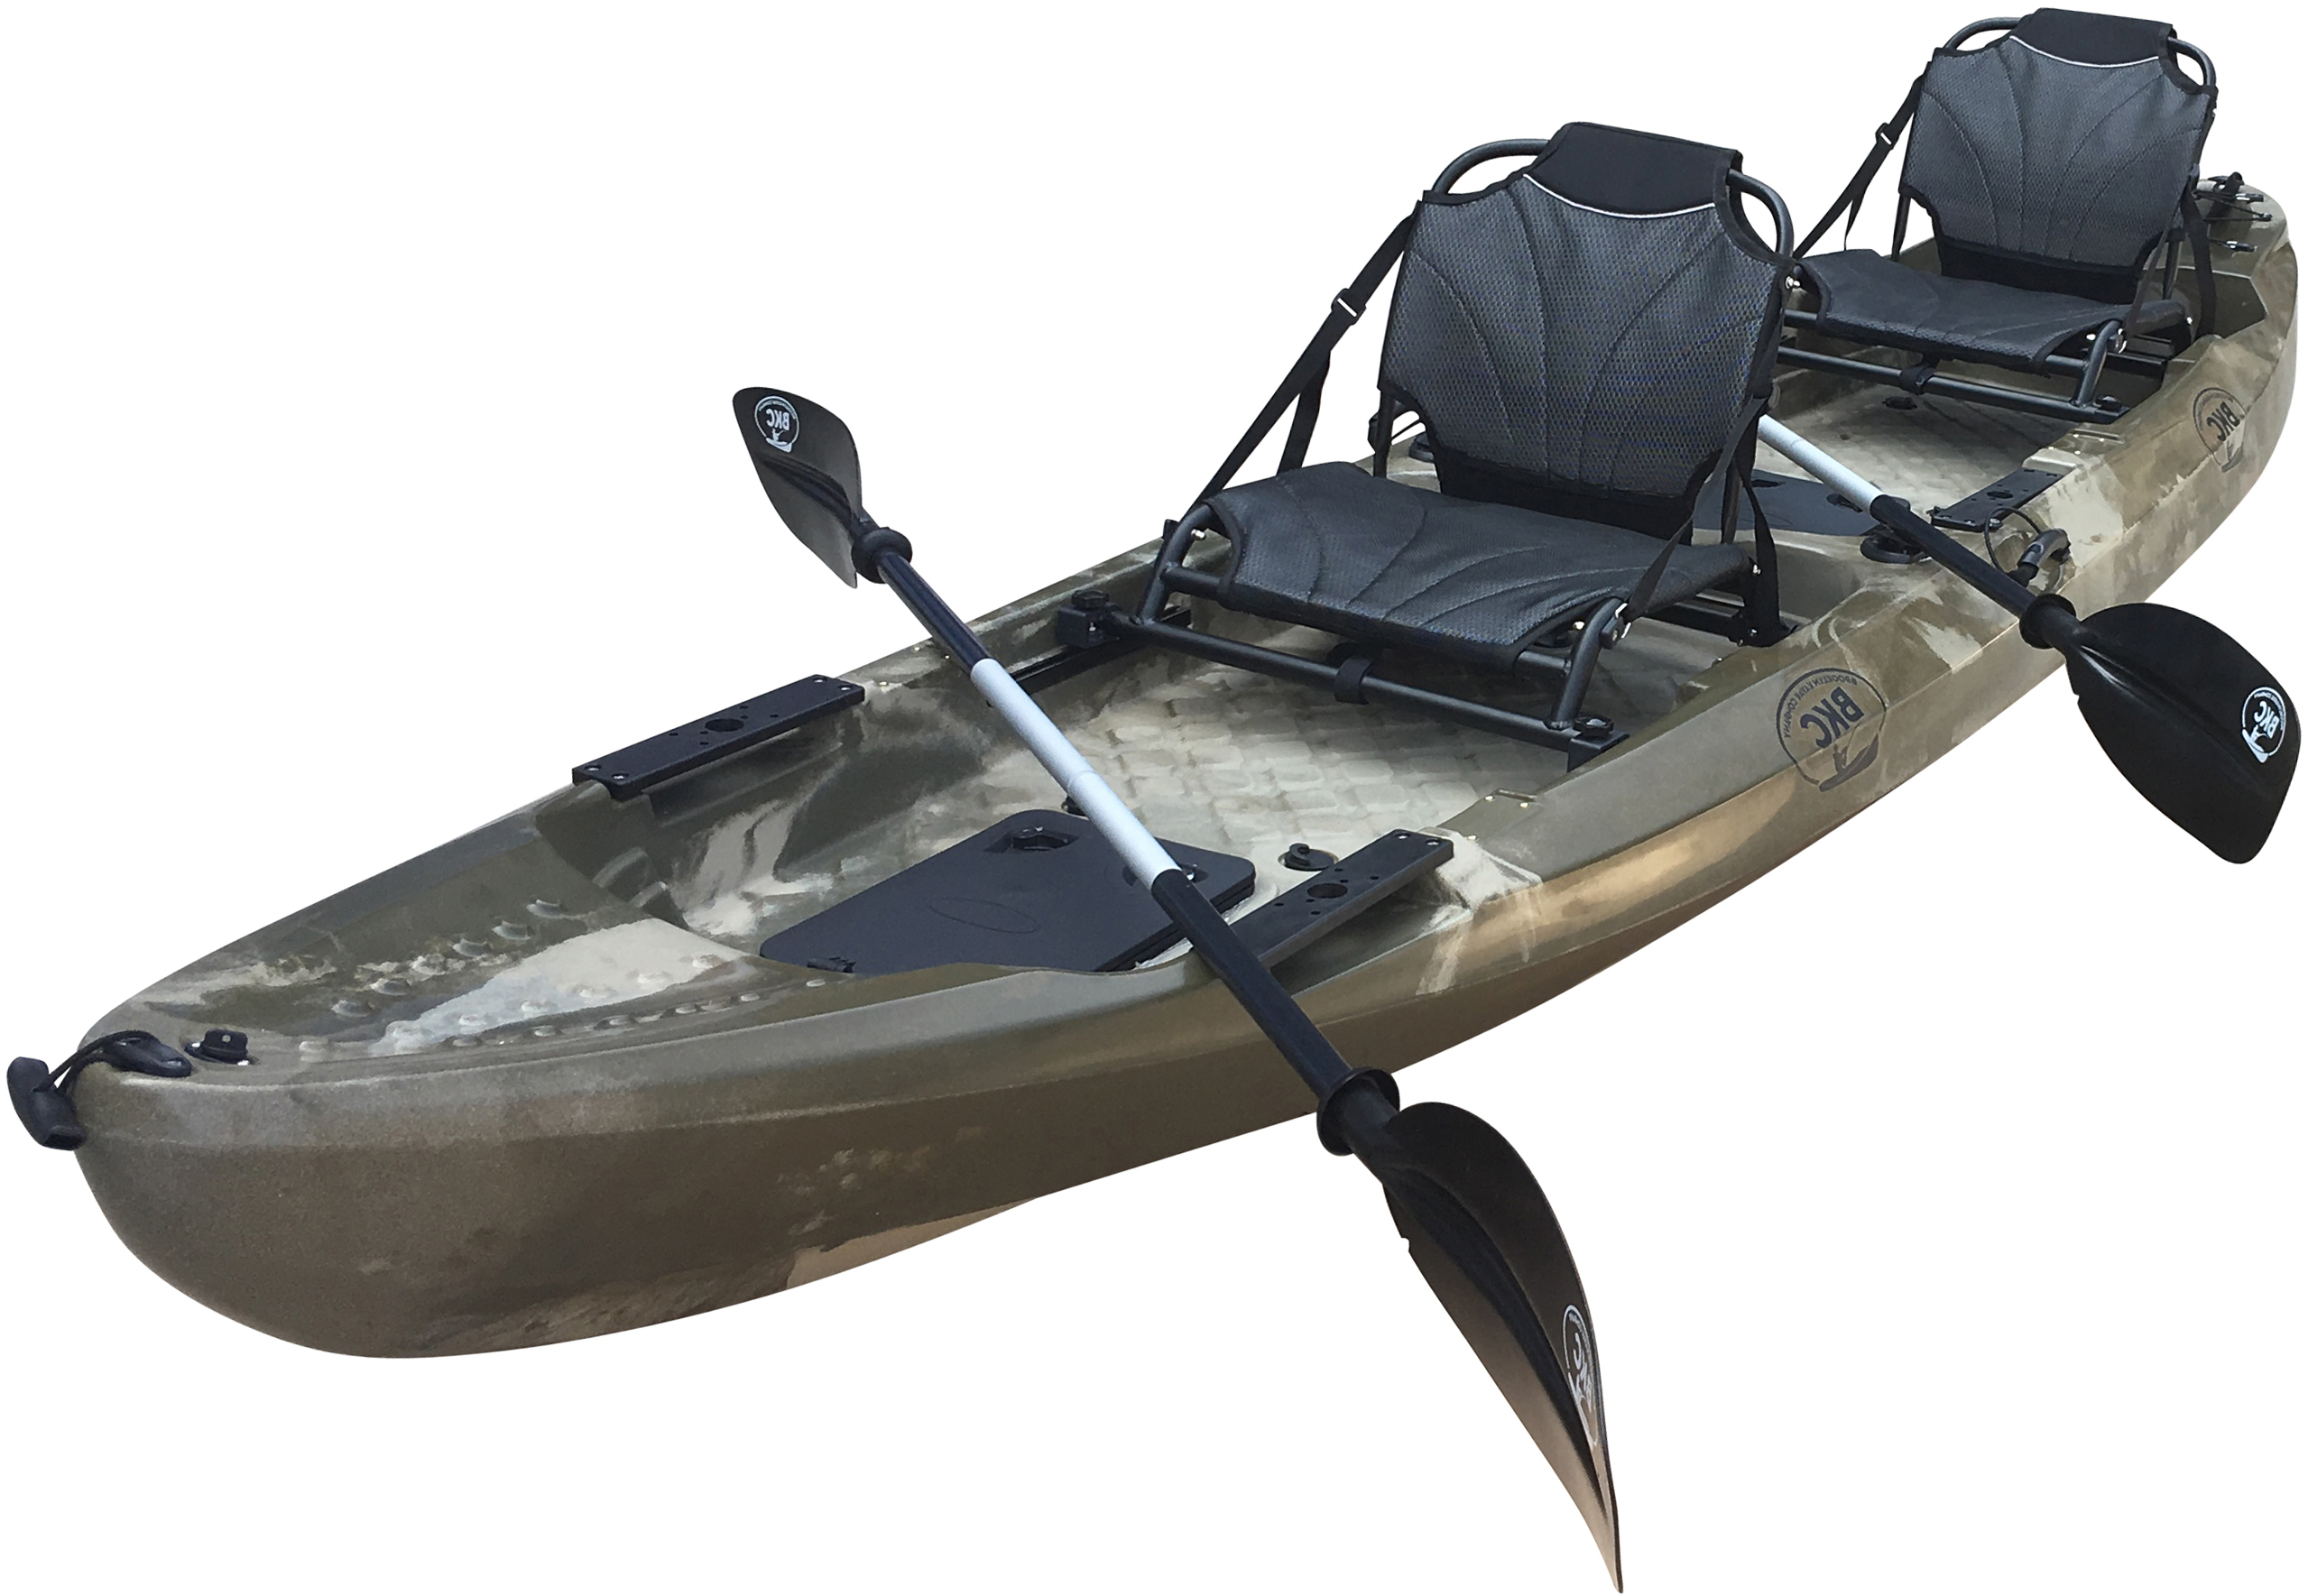 Click here to buy BKC UH-TK29 13-Foot 1-inch Tandem 2 Person Sit On Top Fishing Kayak with 2 Up-Right Seats and 2 Paddles Included by Brooklyn Kayak Company.